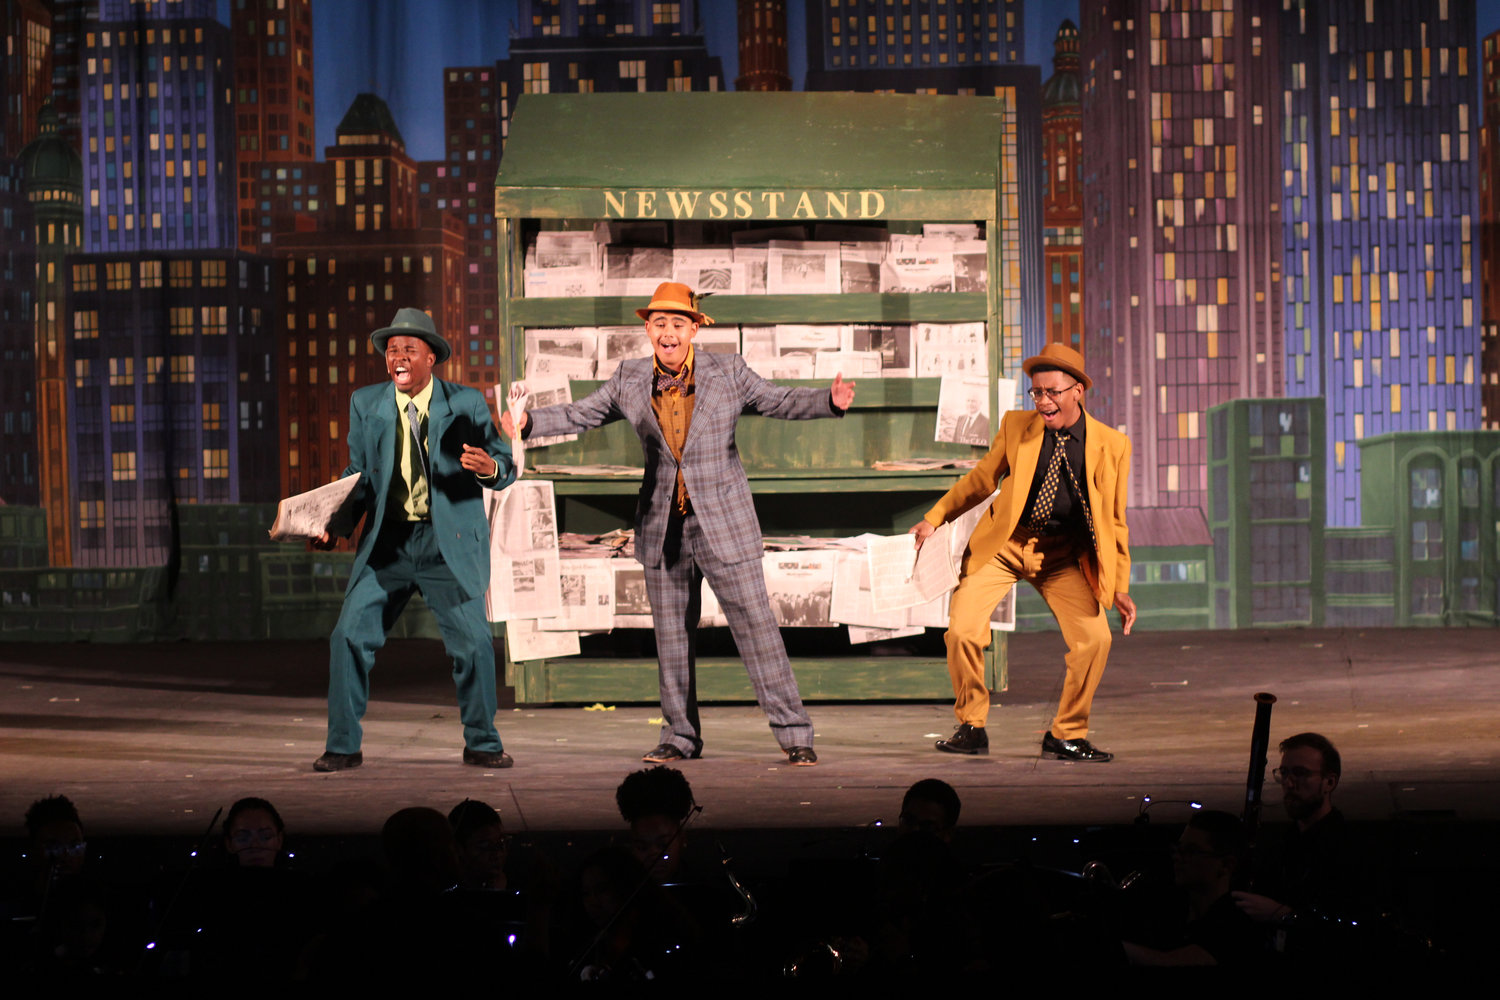 "Baldwin High School students performed ""Guys and Dolls"" last weekend. In the opening number, ""Fugue for Tinhorns,"" gamblers Benny Southstreet, Nicely-Nicely Johnson and Rusty Charlie, played by Chris Holman, Daniel Polonia and Jaylin Thomas, set the stage for the classic story of love and gambling in 1920s Times Square."